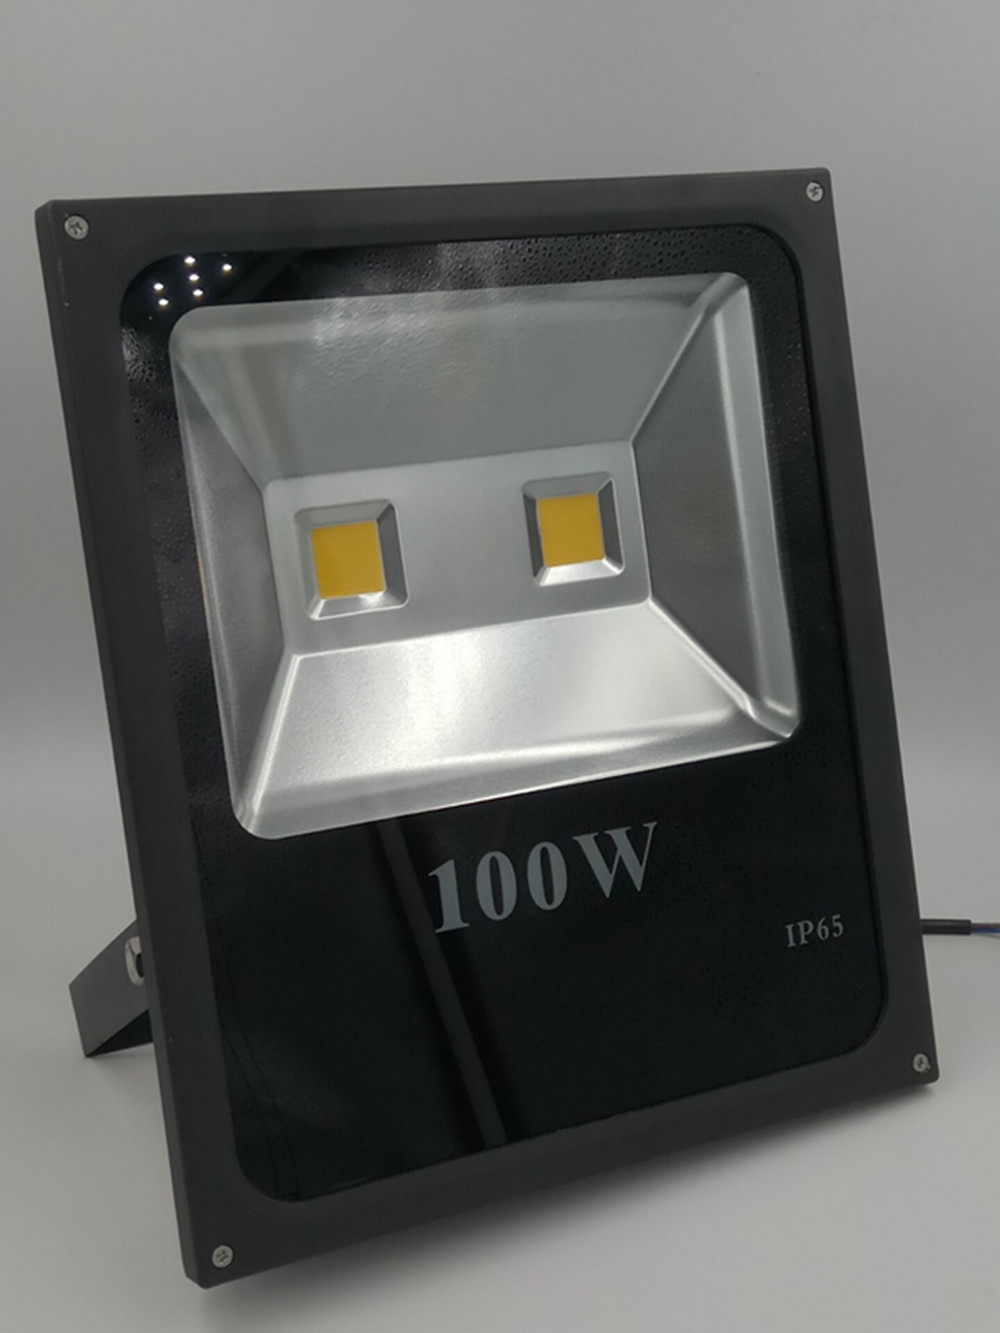 Waterproof LED Flood Light 100W Reflector Floodlight Spotlight Street Outdoor Wall Lamp Garden Projectors